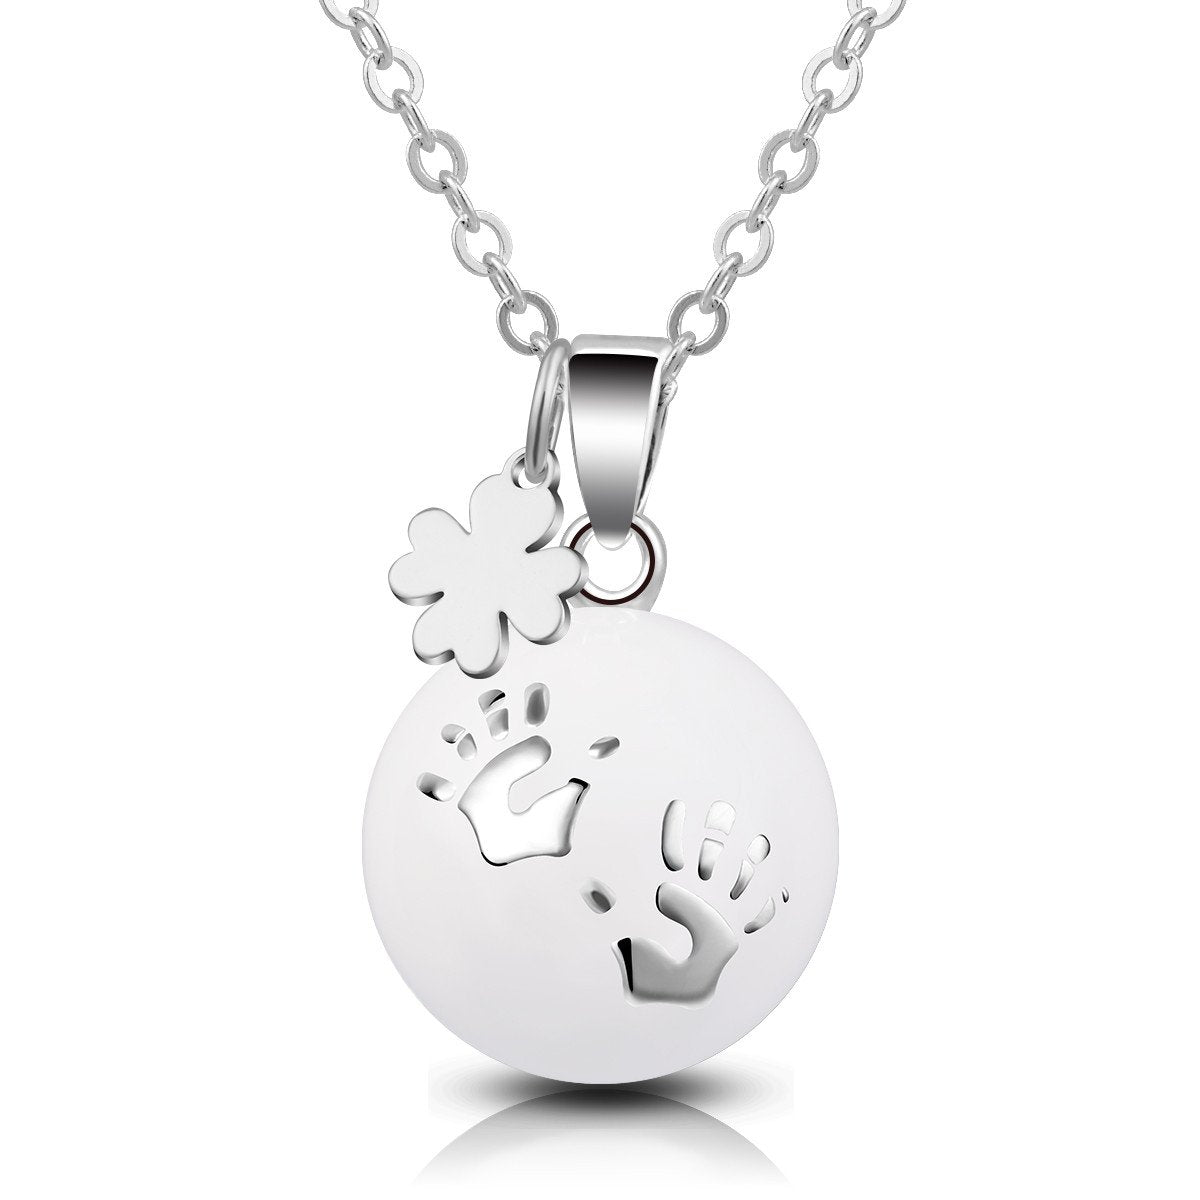 925 Sterling Silver Harmony Bola Pregnancy Necklace & Lucky Clover Music Chime Pendant Wishing Ball